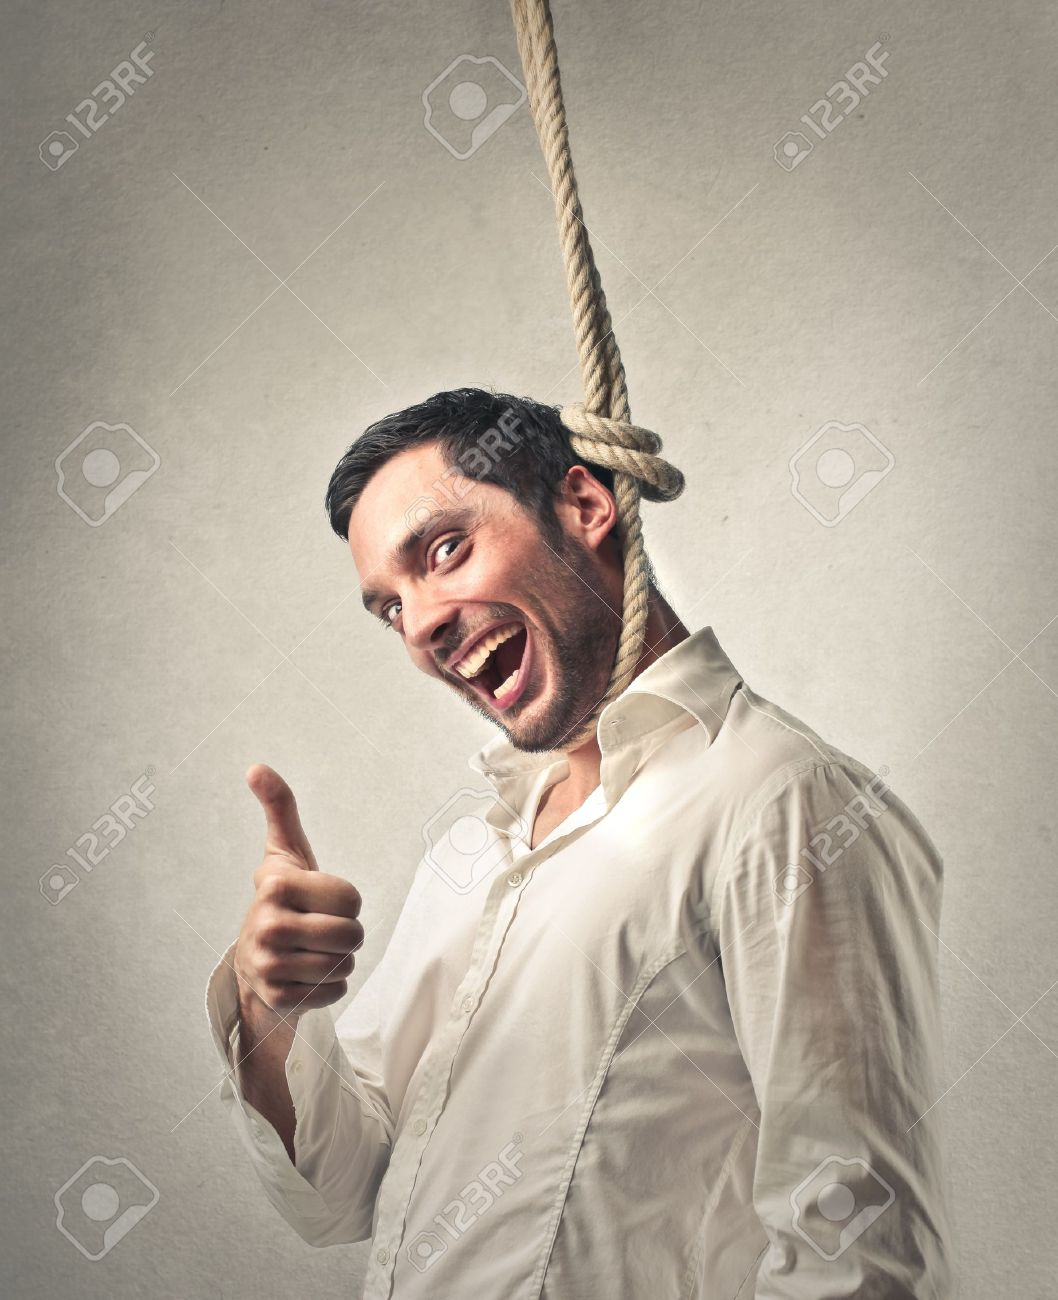 Man Hanging Up Himself With Happiness Stock Photo, Picture And Royalty Free  Image. Image 19501797.